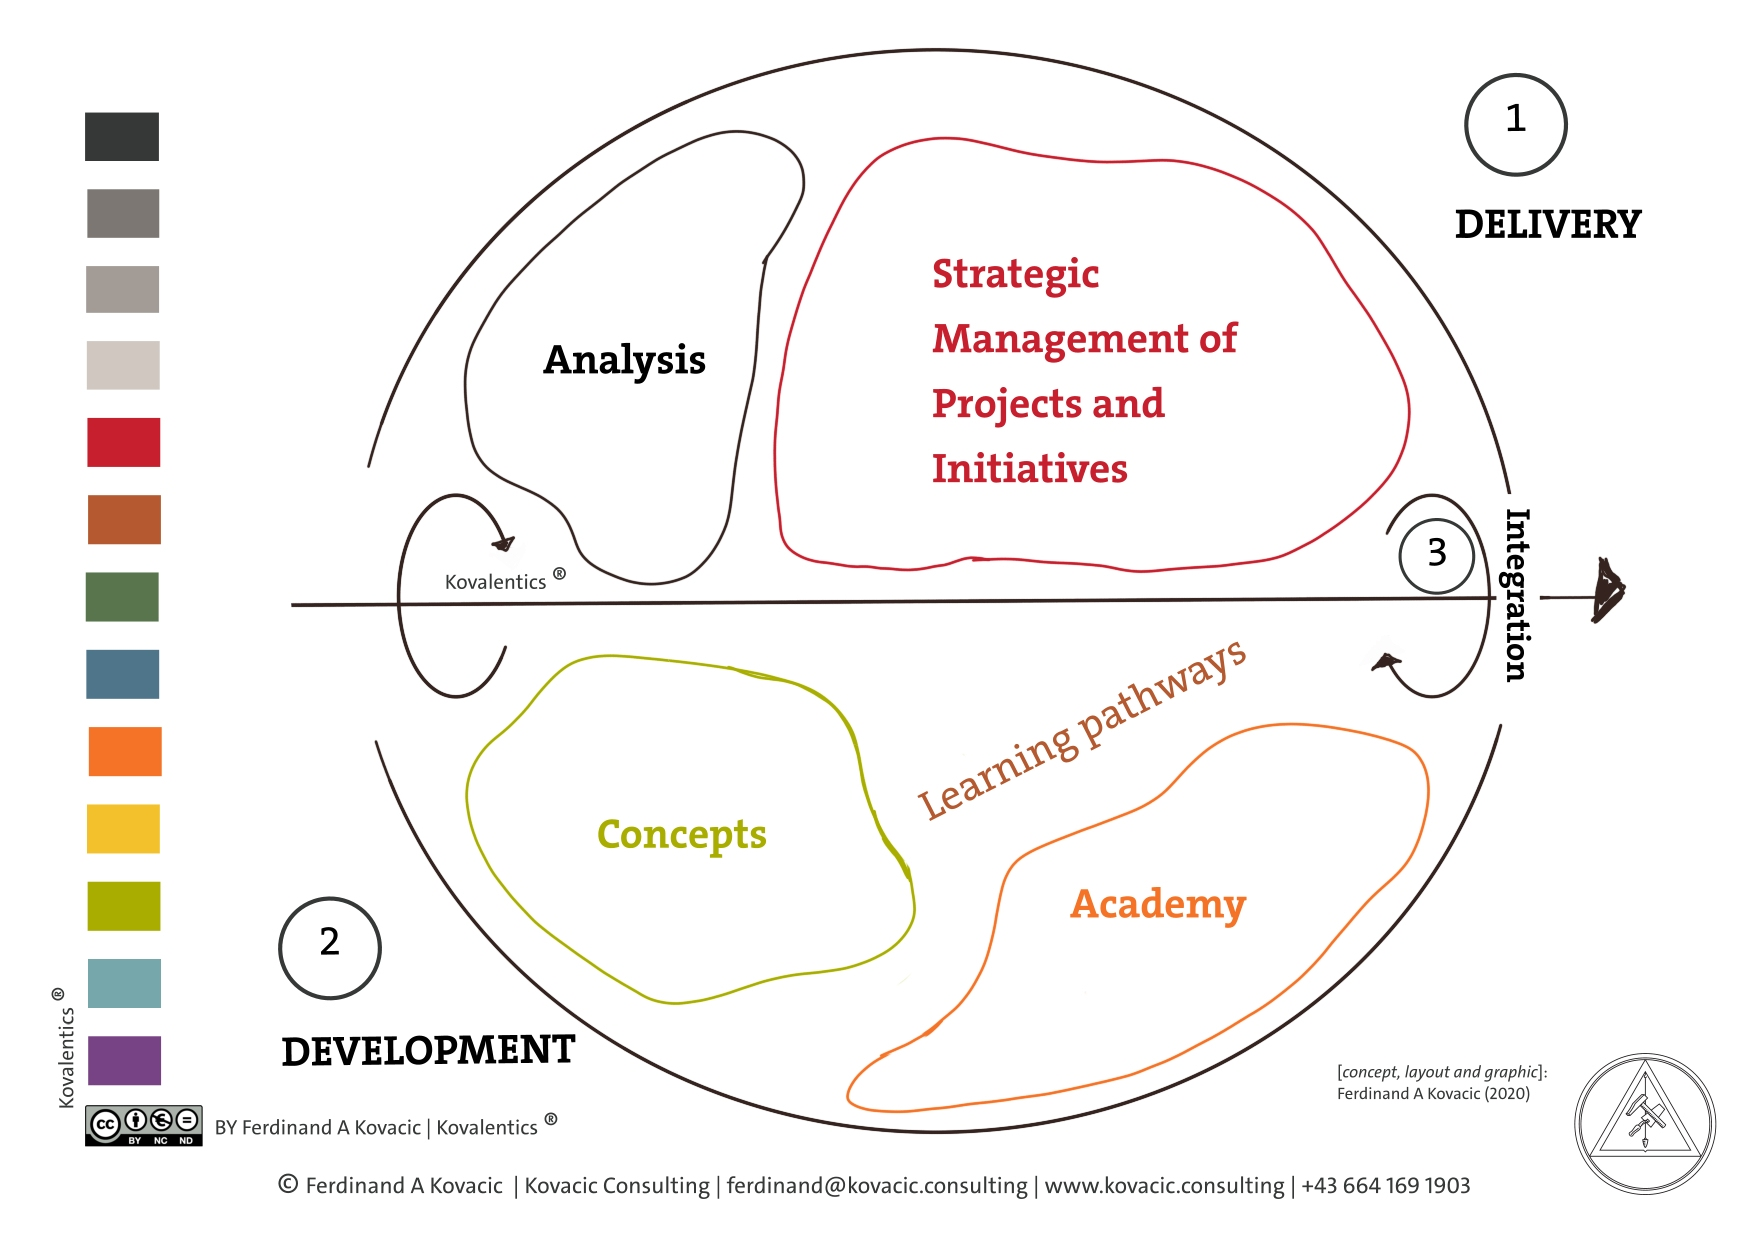 Delivery and Development. Analysis. Strategic Management of Projects and Initiatives. Academy. Concepts. Integration